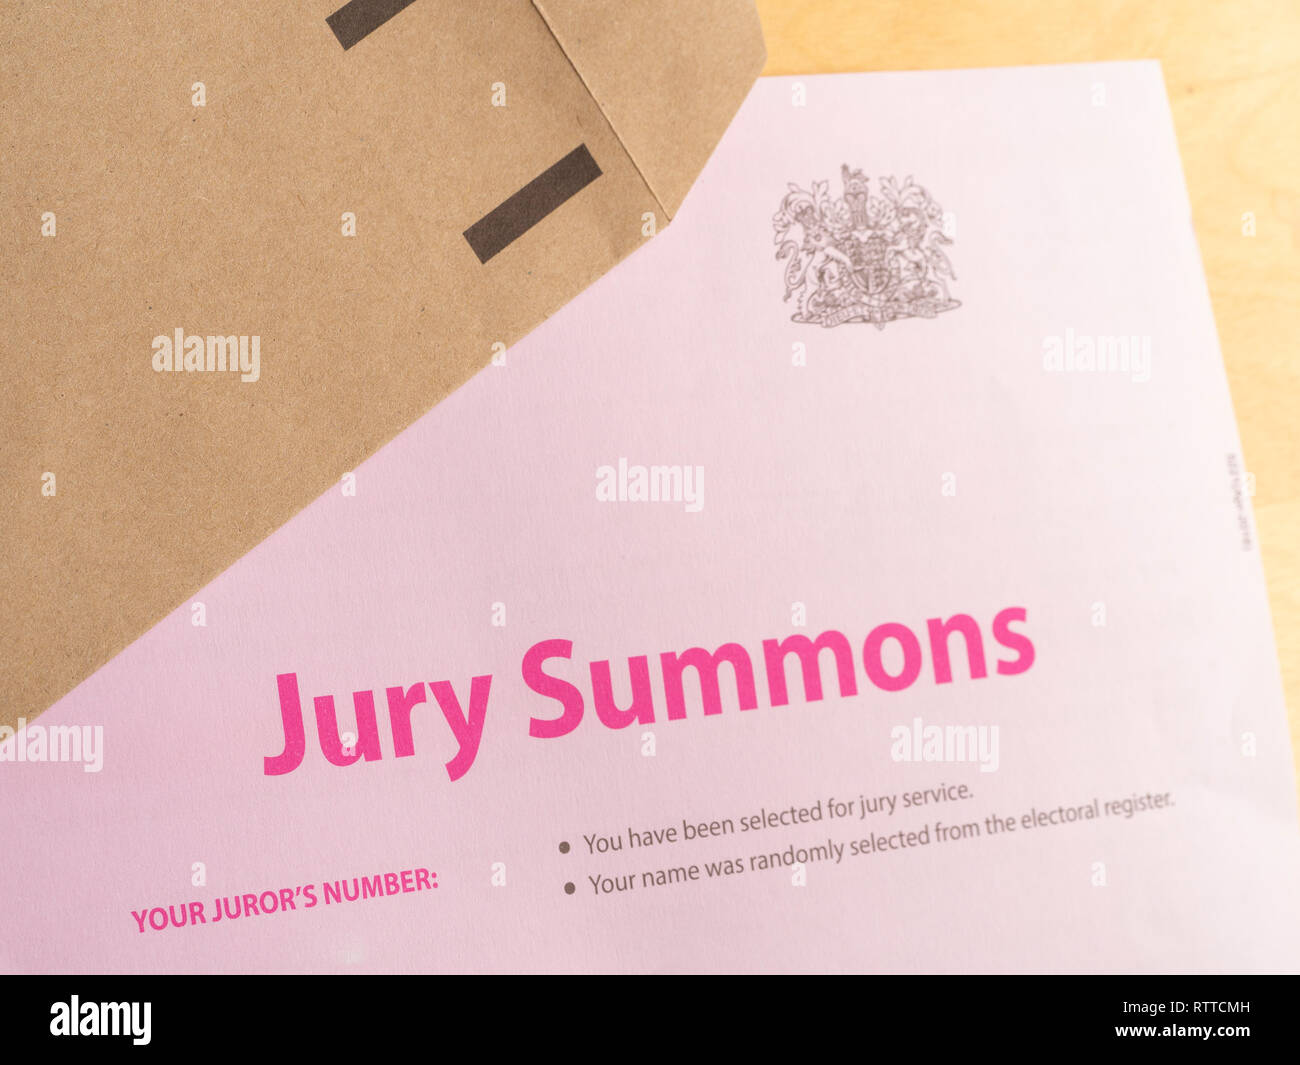 Summons Stock Photos & Summons Stock Images - Alamy